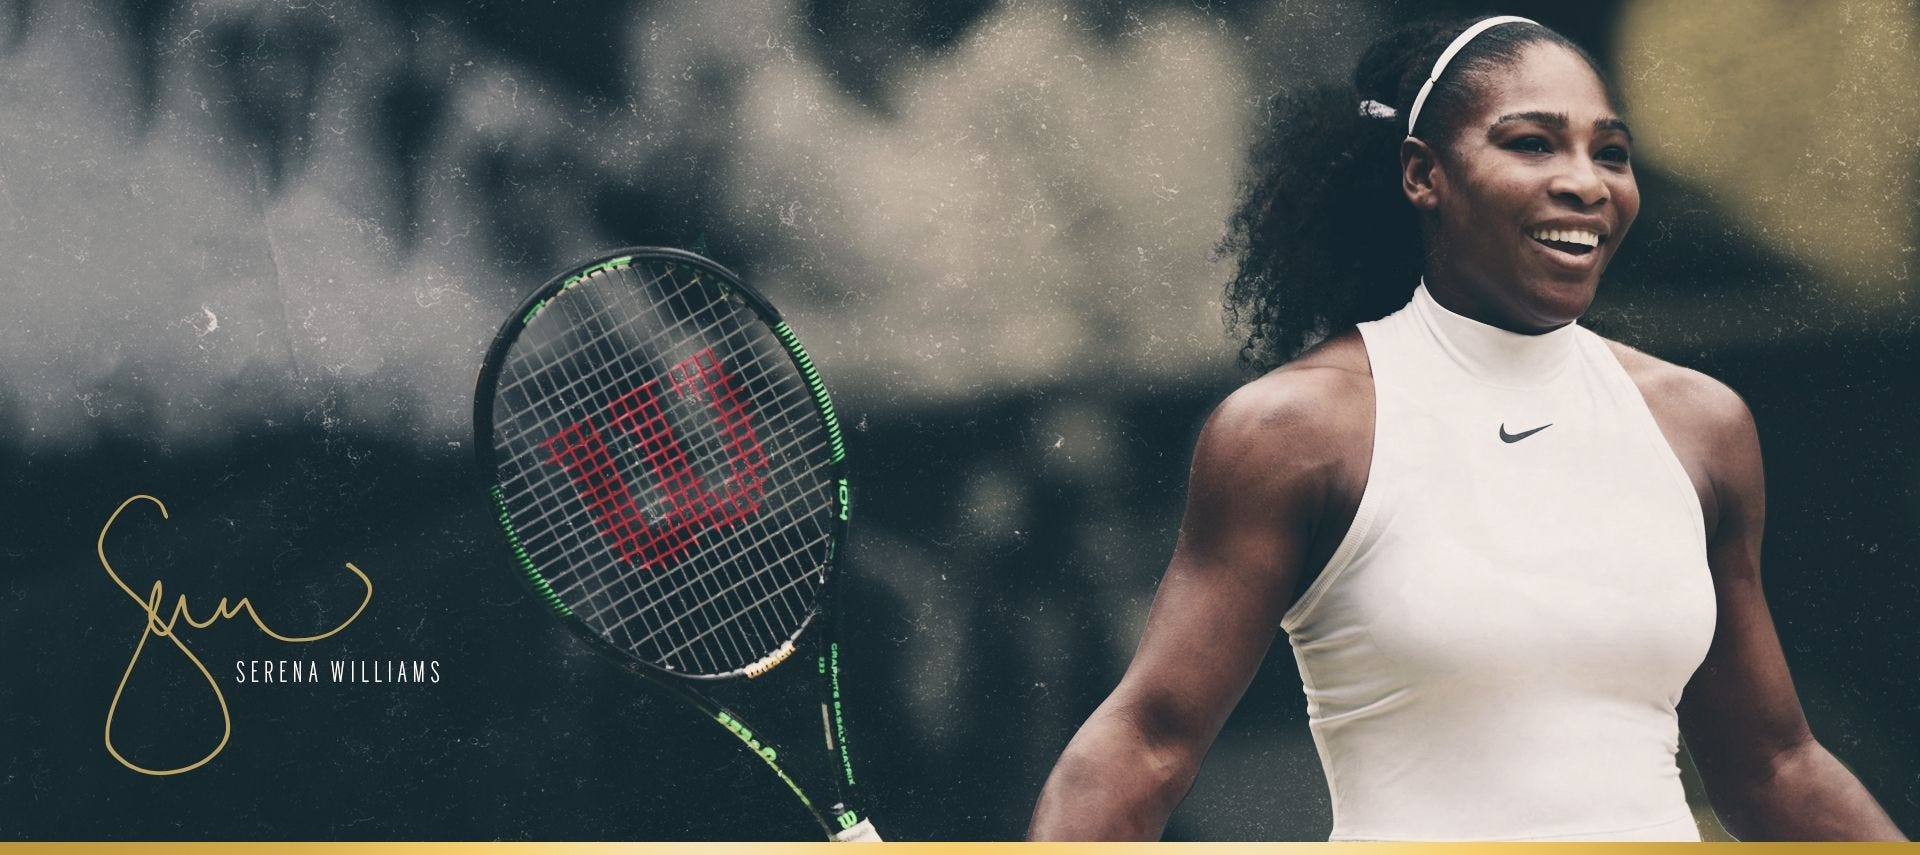 The Serena Williams Autograph Tennis Racket Blade 104